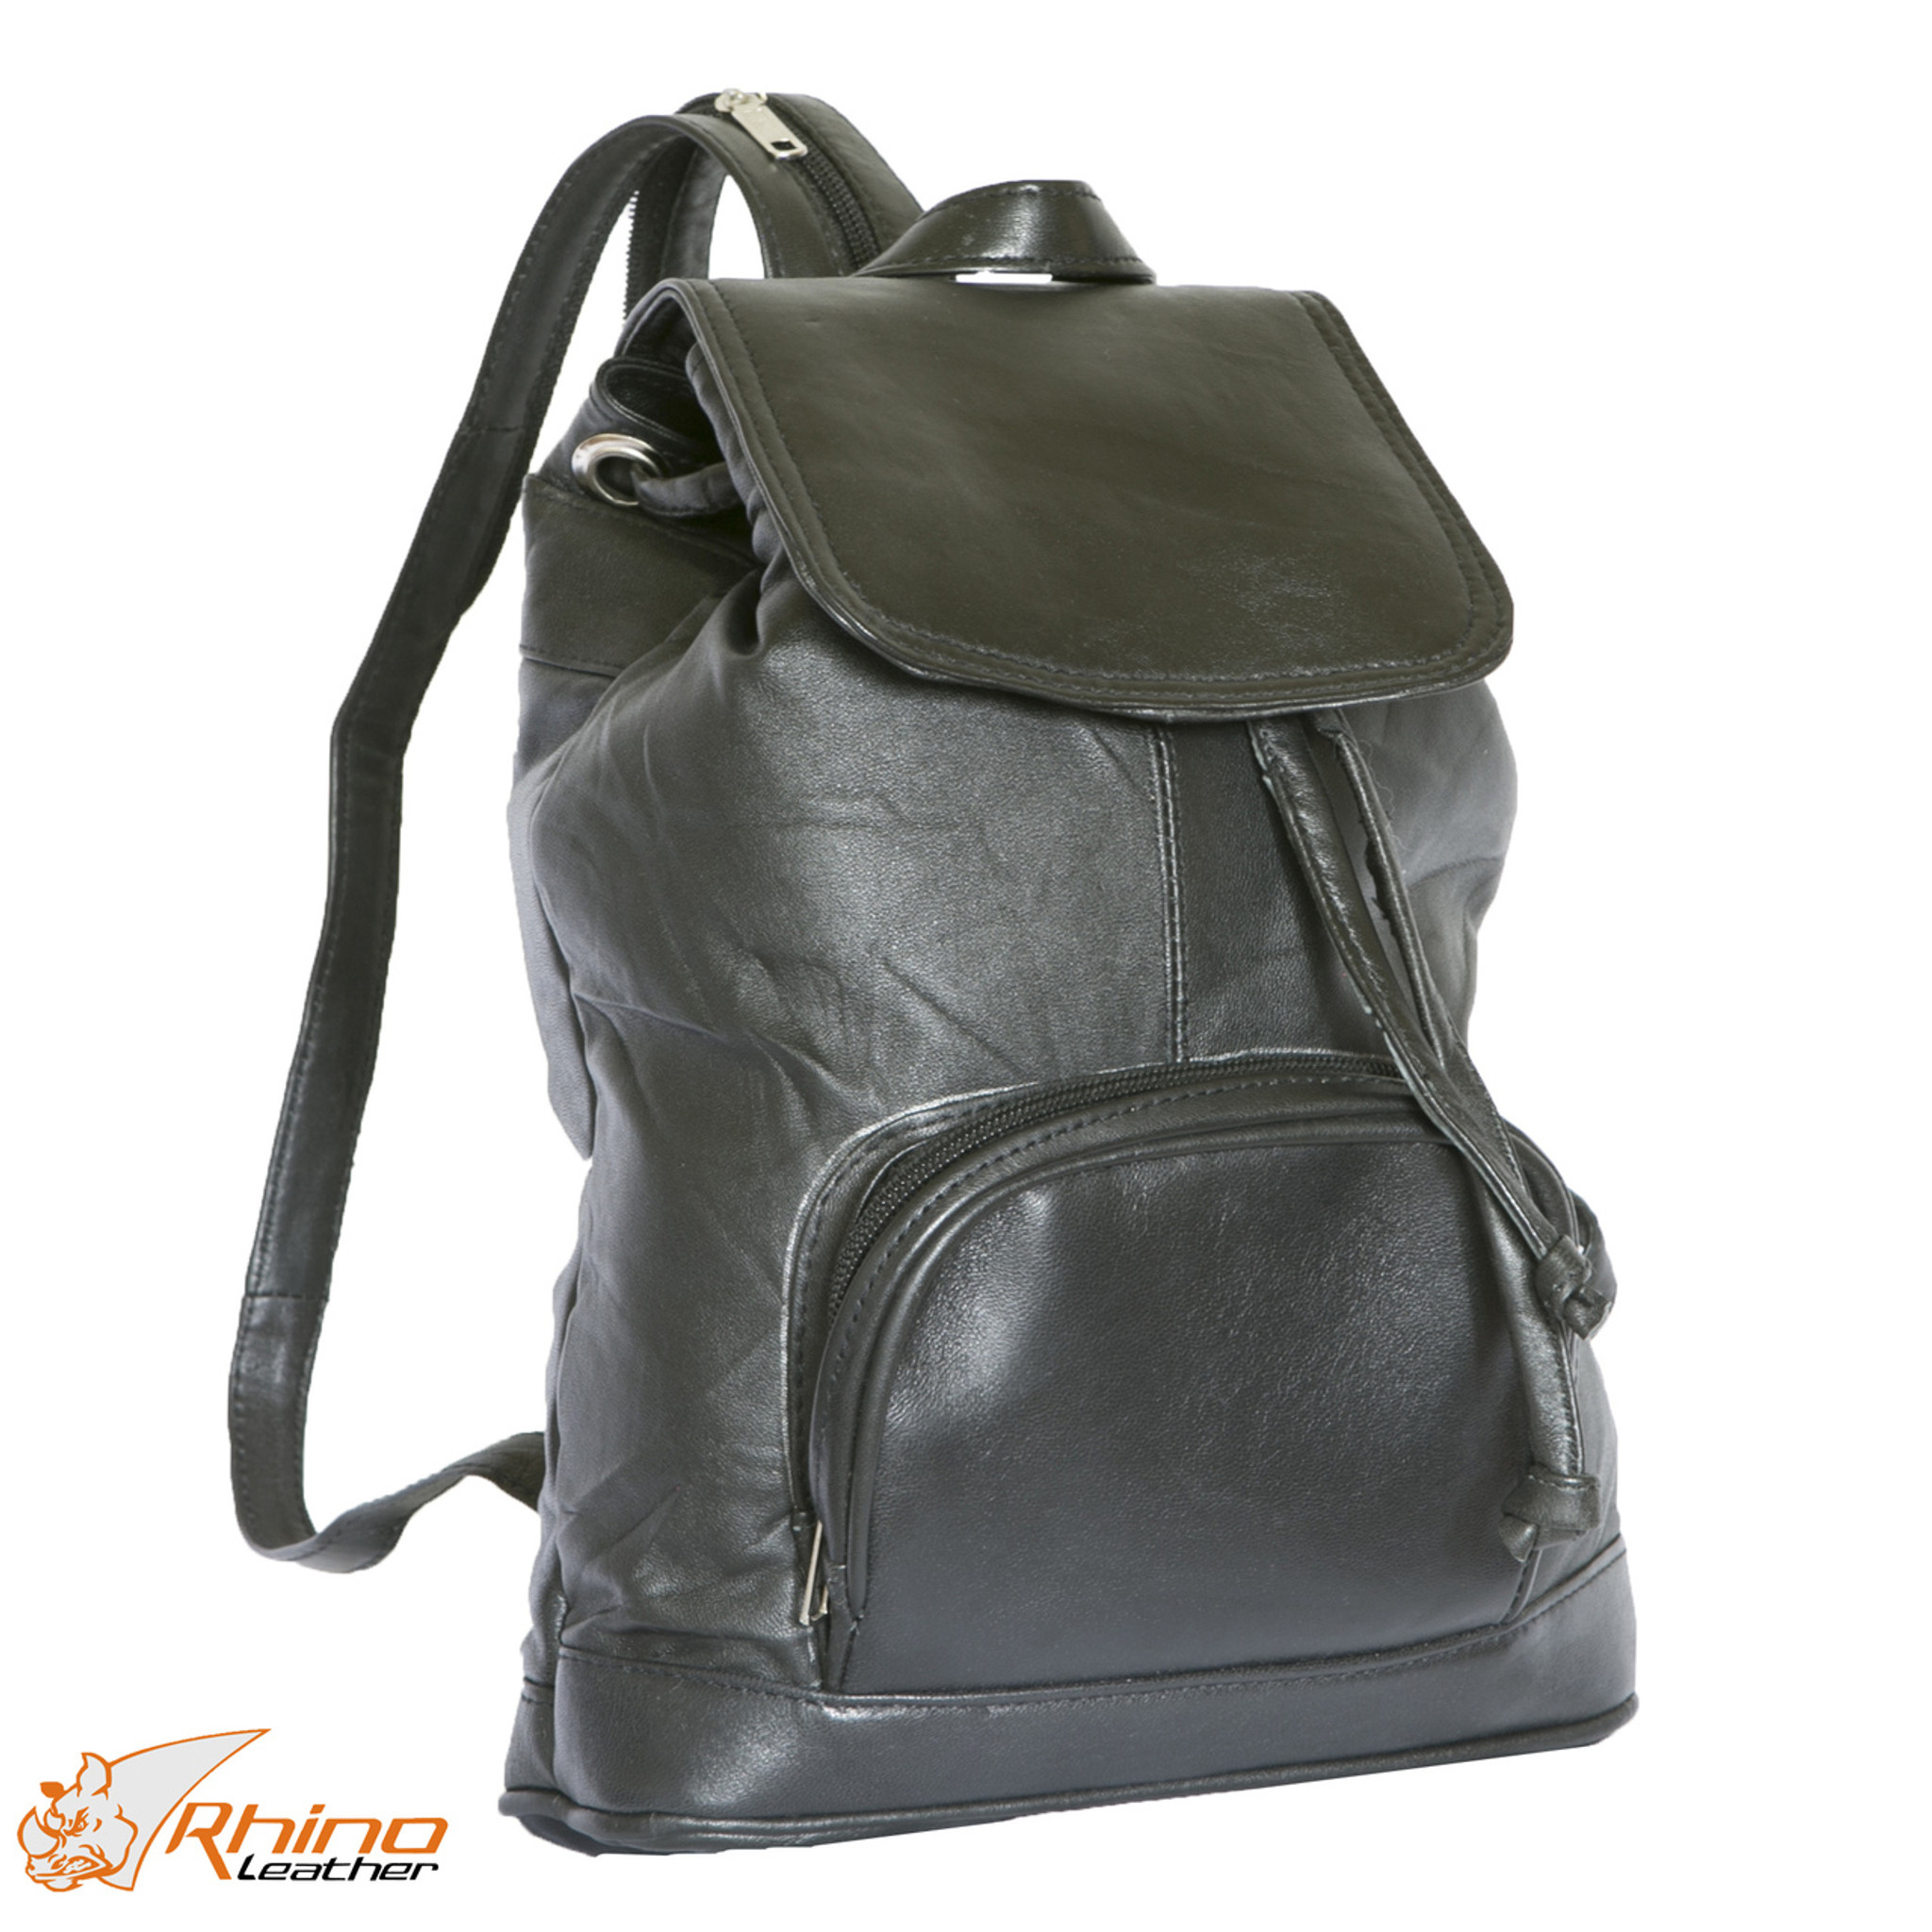 a3b01858d052 Medium Black Leather Backpack - Wilma